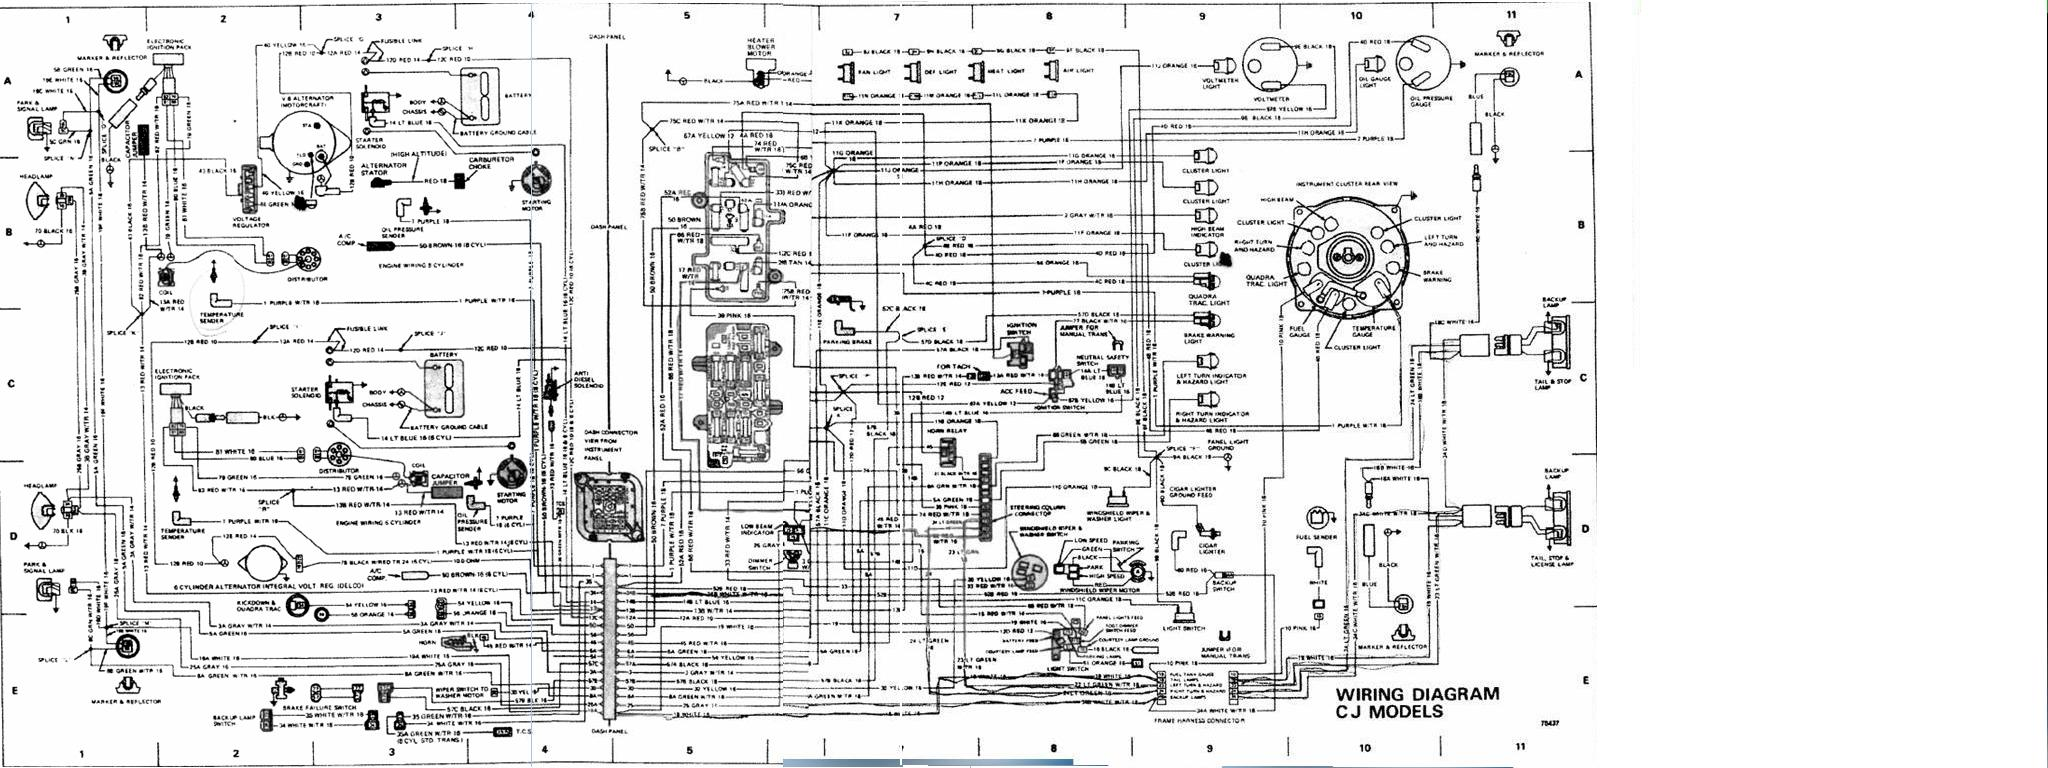 [NRIO_4796]   79 Jeep Cj5 Wiring Harness - Motorcycle Wiring Schematic for Wiring Diagram  Schematics | 1986 Jeep Cj7 Wiring Diagram |  | Wiring Diagram Schematics